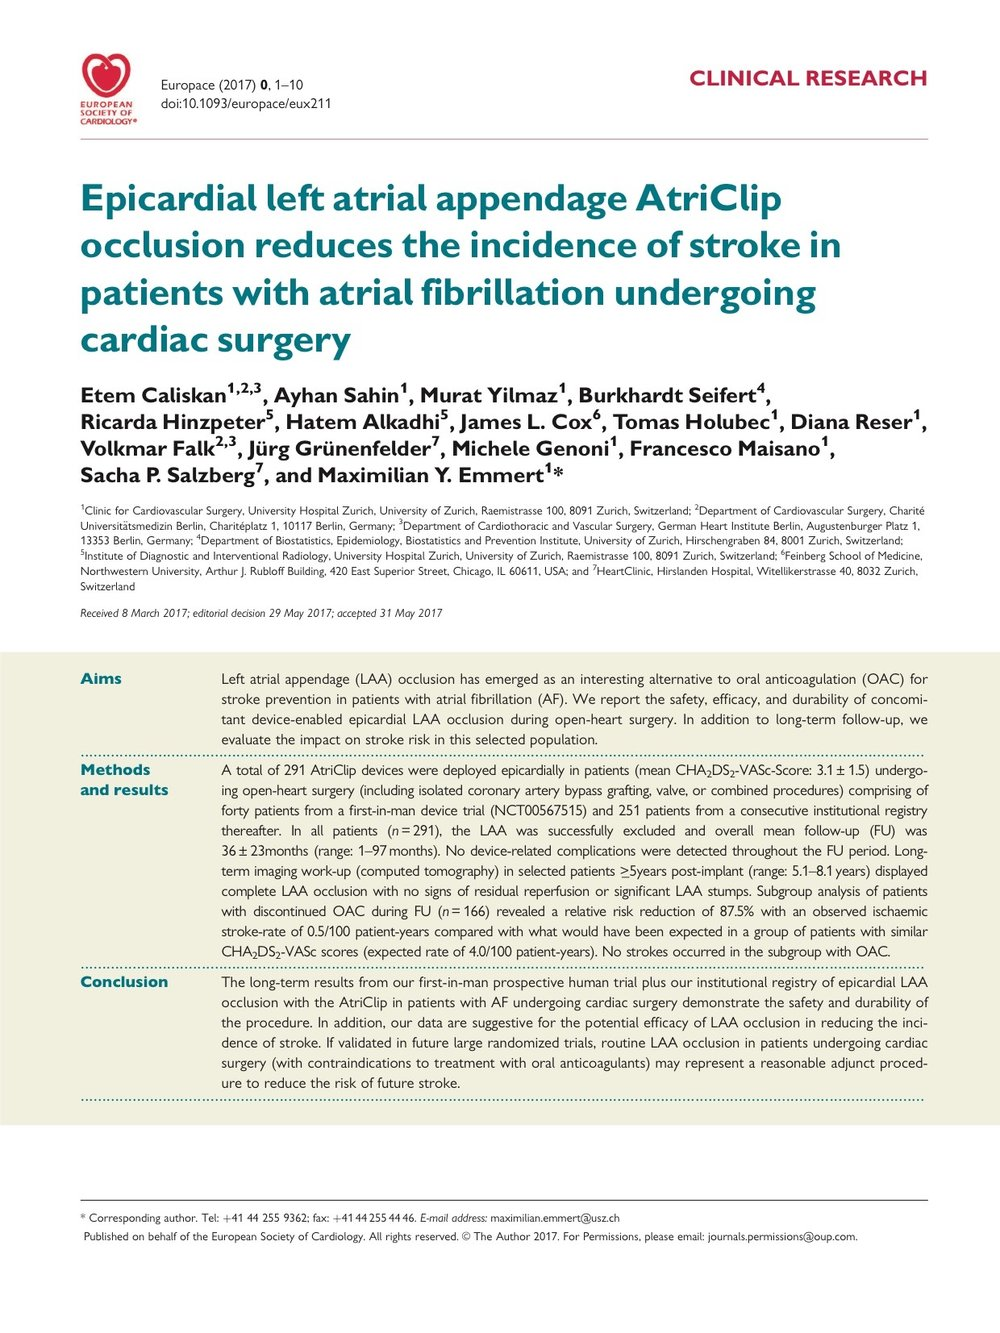 Epicardial left atrial appendage AtriClip occlusion reduces the incidence of stroke in patients with atrial fibrillation undergoing cardiac surgery.  - CLINICAL RESEARCH